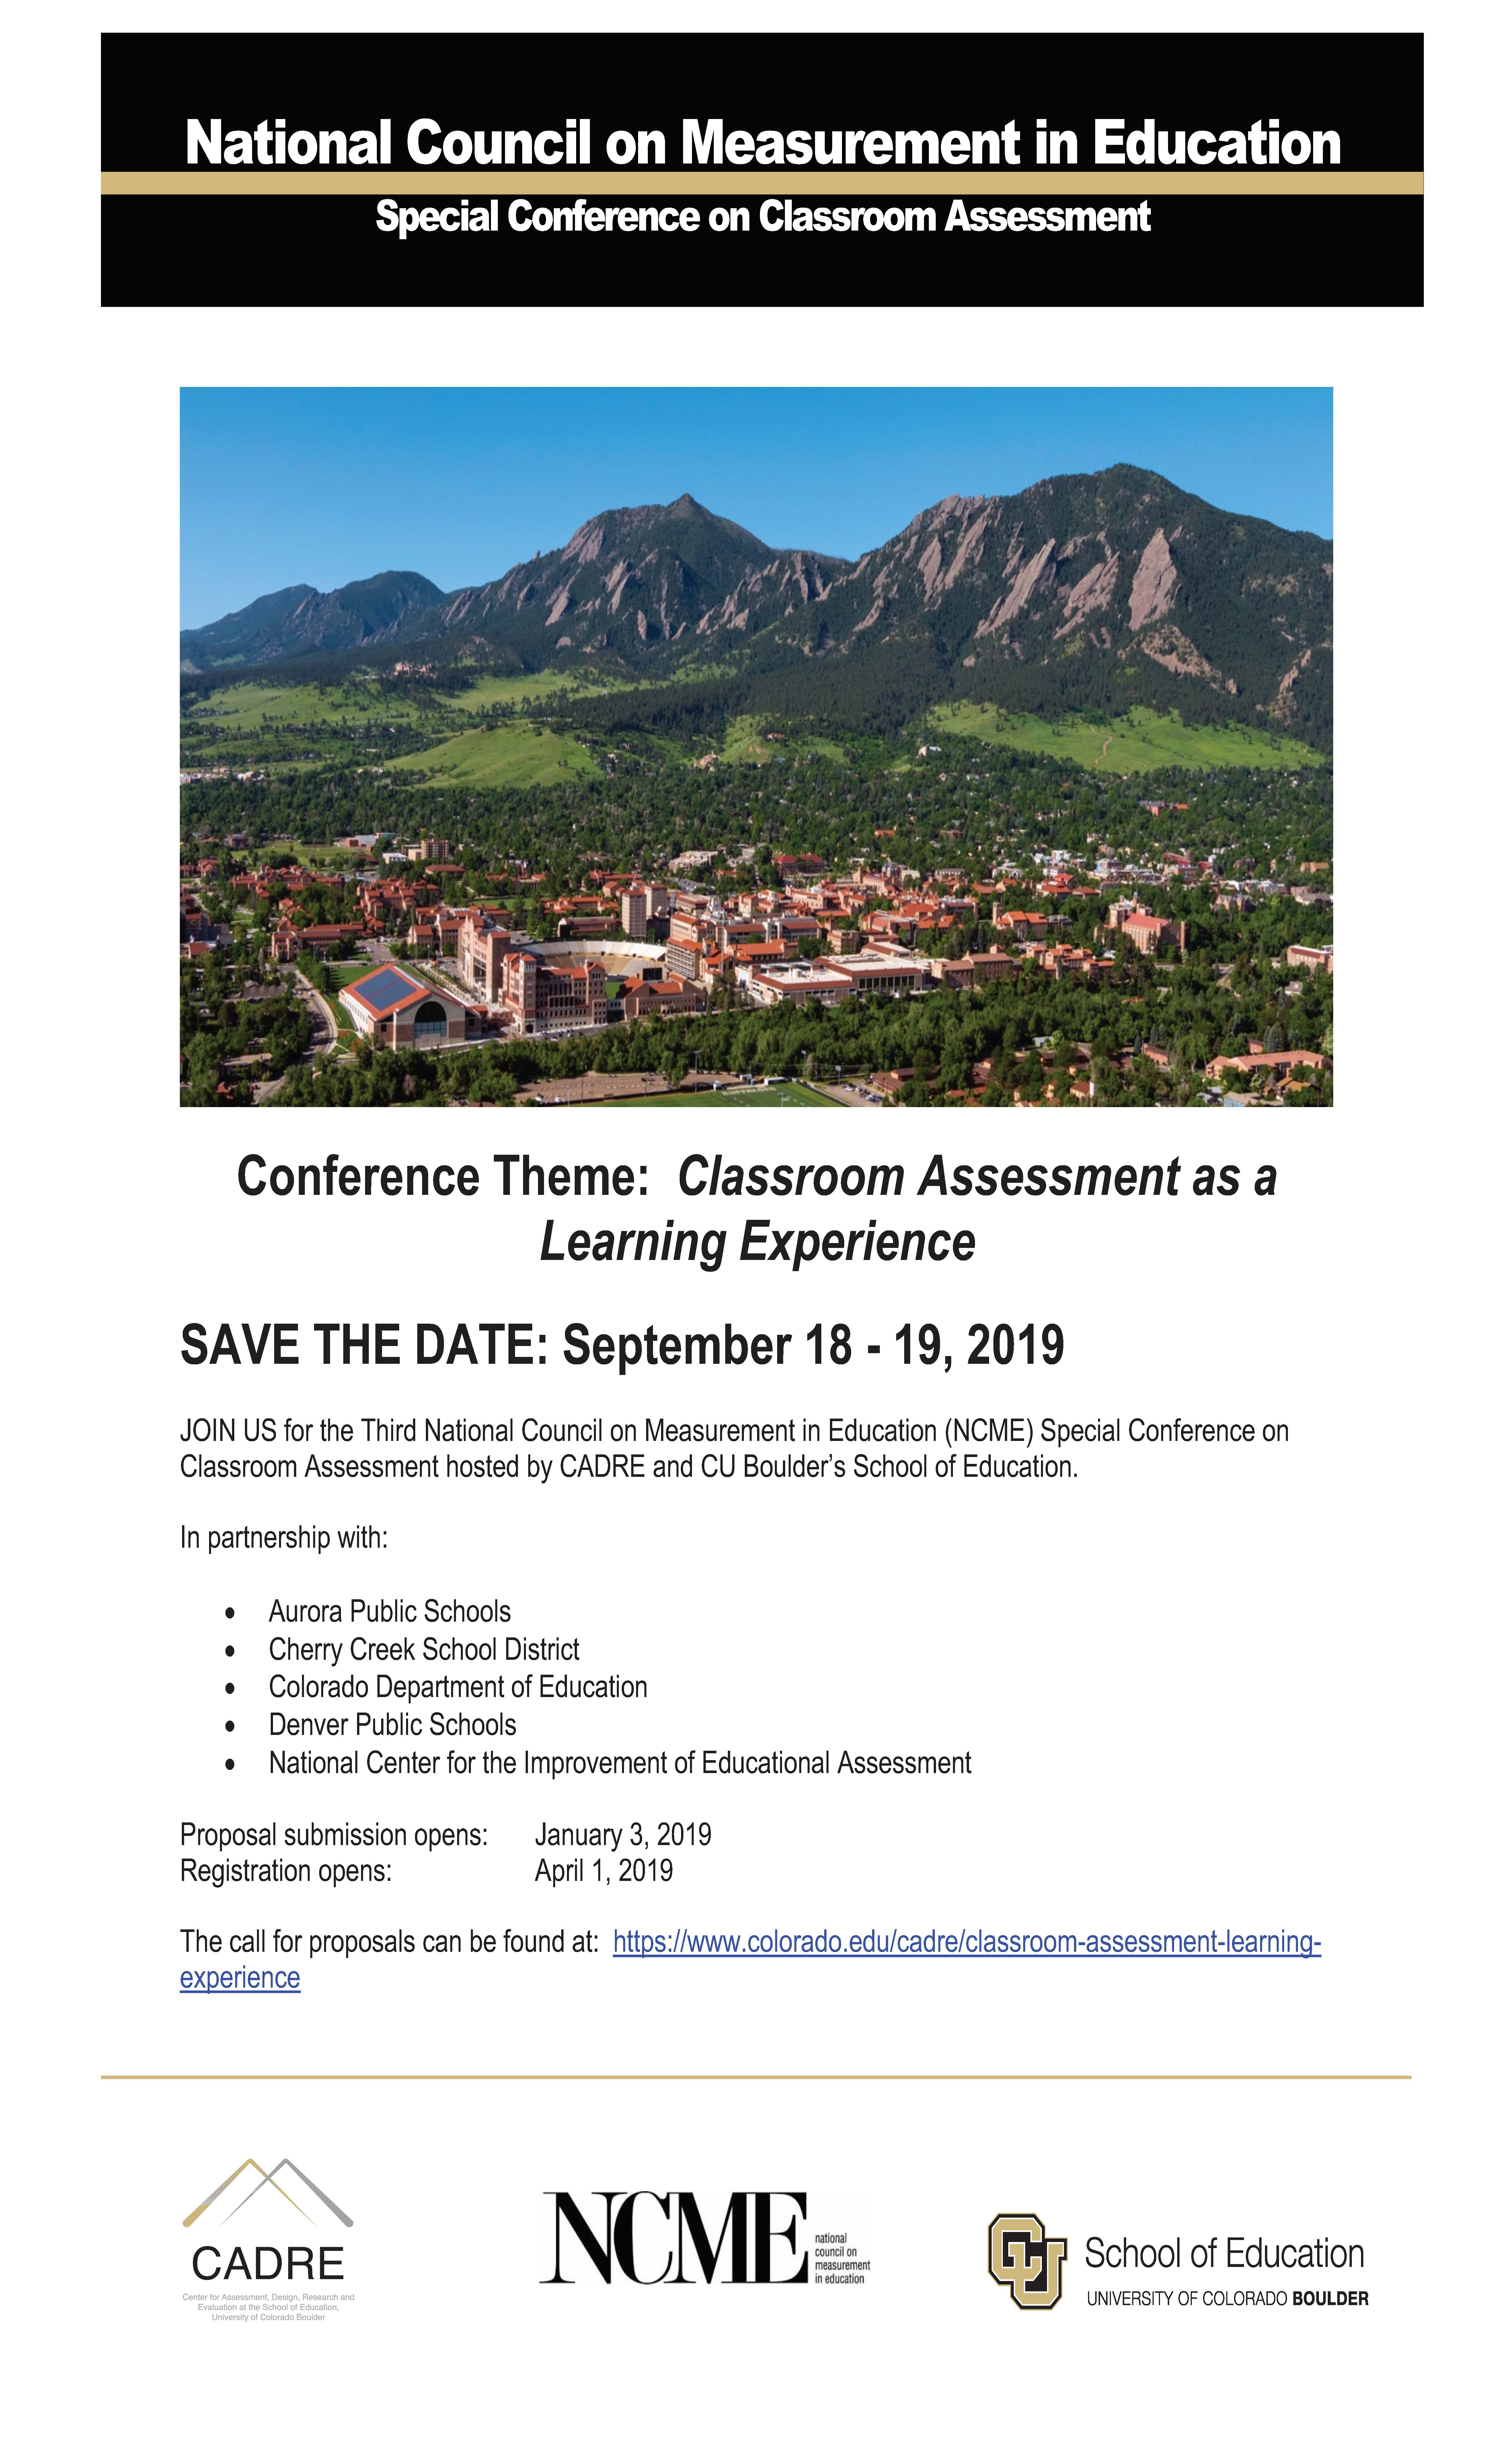 NCME 2019 Conference Classroom Assessment as a Learning Experience